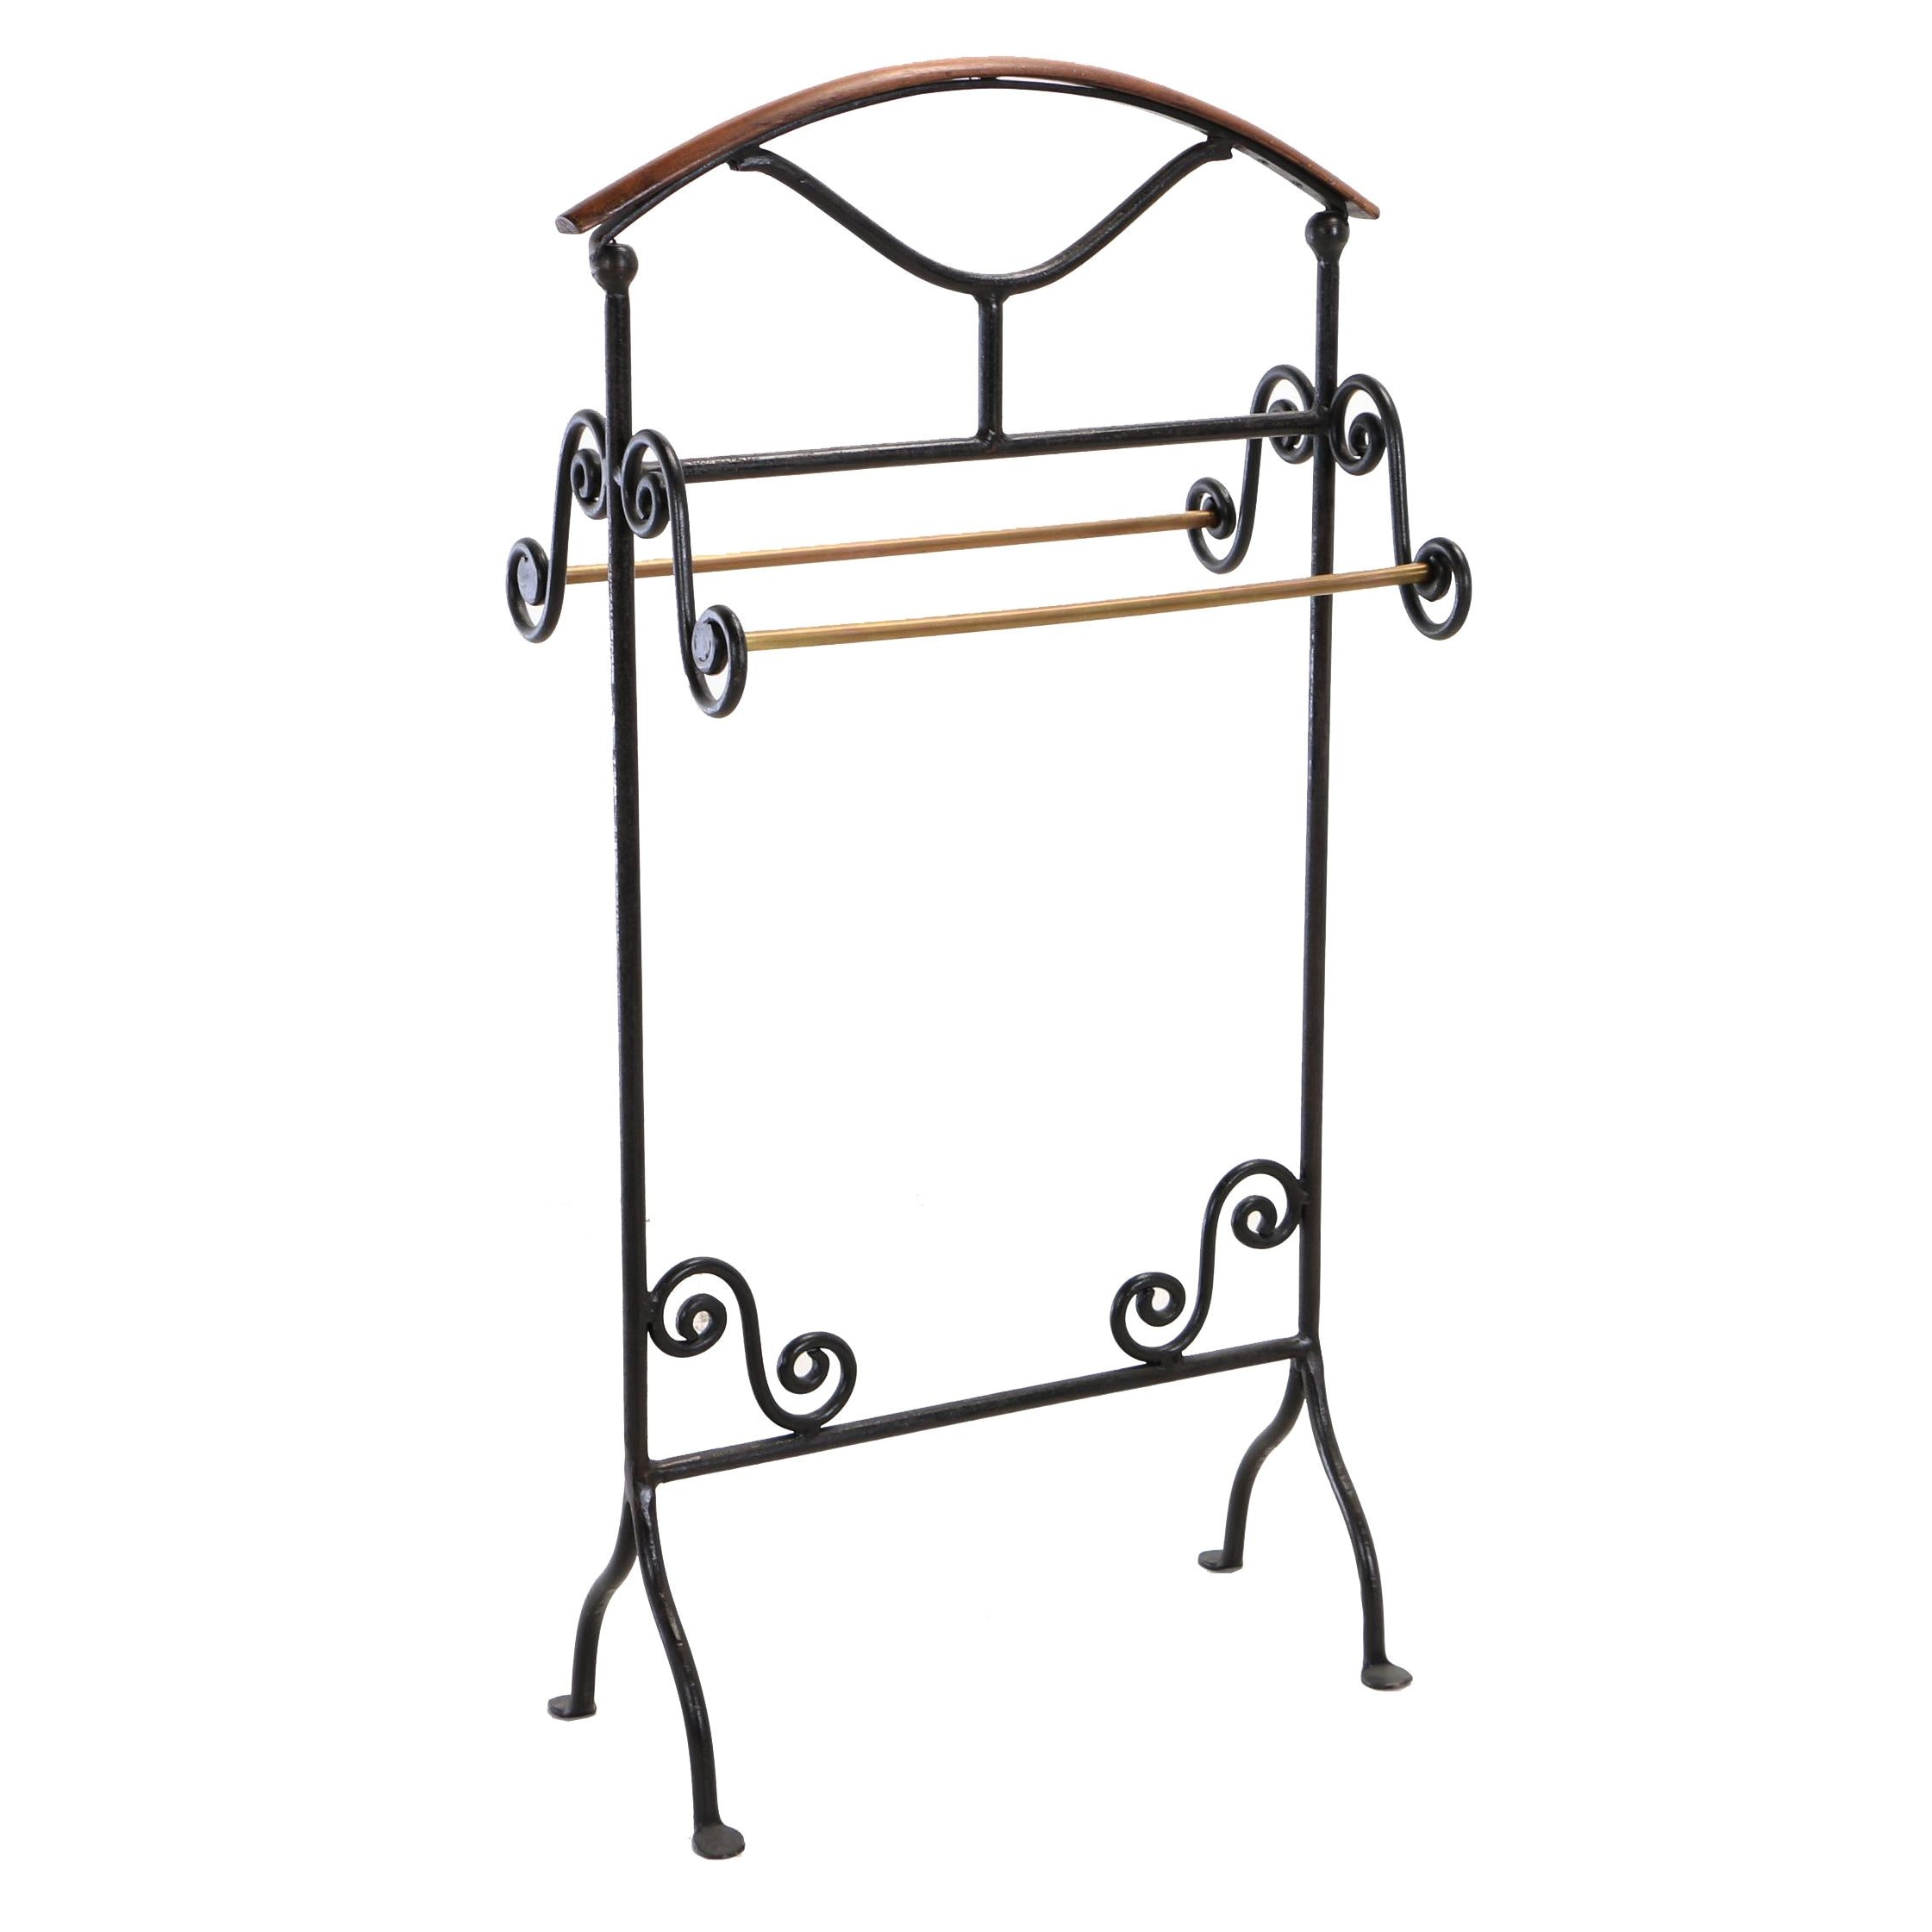 Iron, Brass, and Wood Freestanding Towel Rack, 20th Century